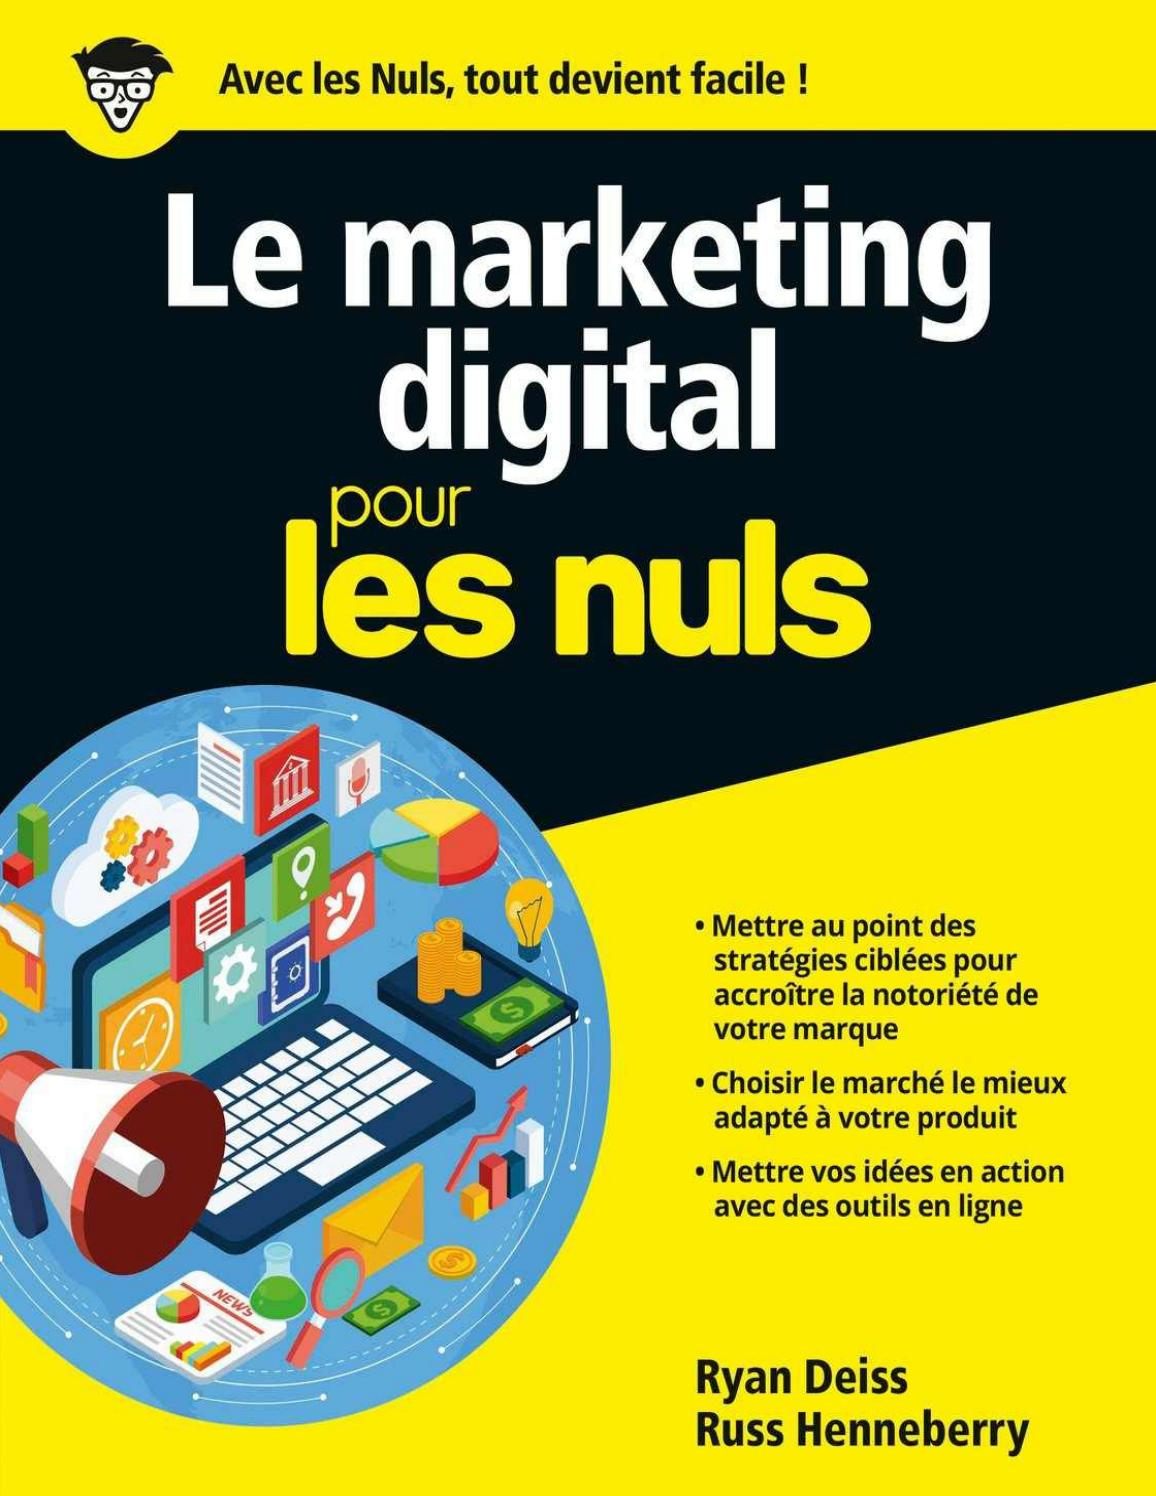 208ac3457e1d Marketing digital pour les nuls hors collection 2017 by i360 - issuu